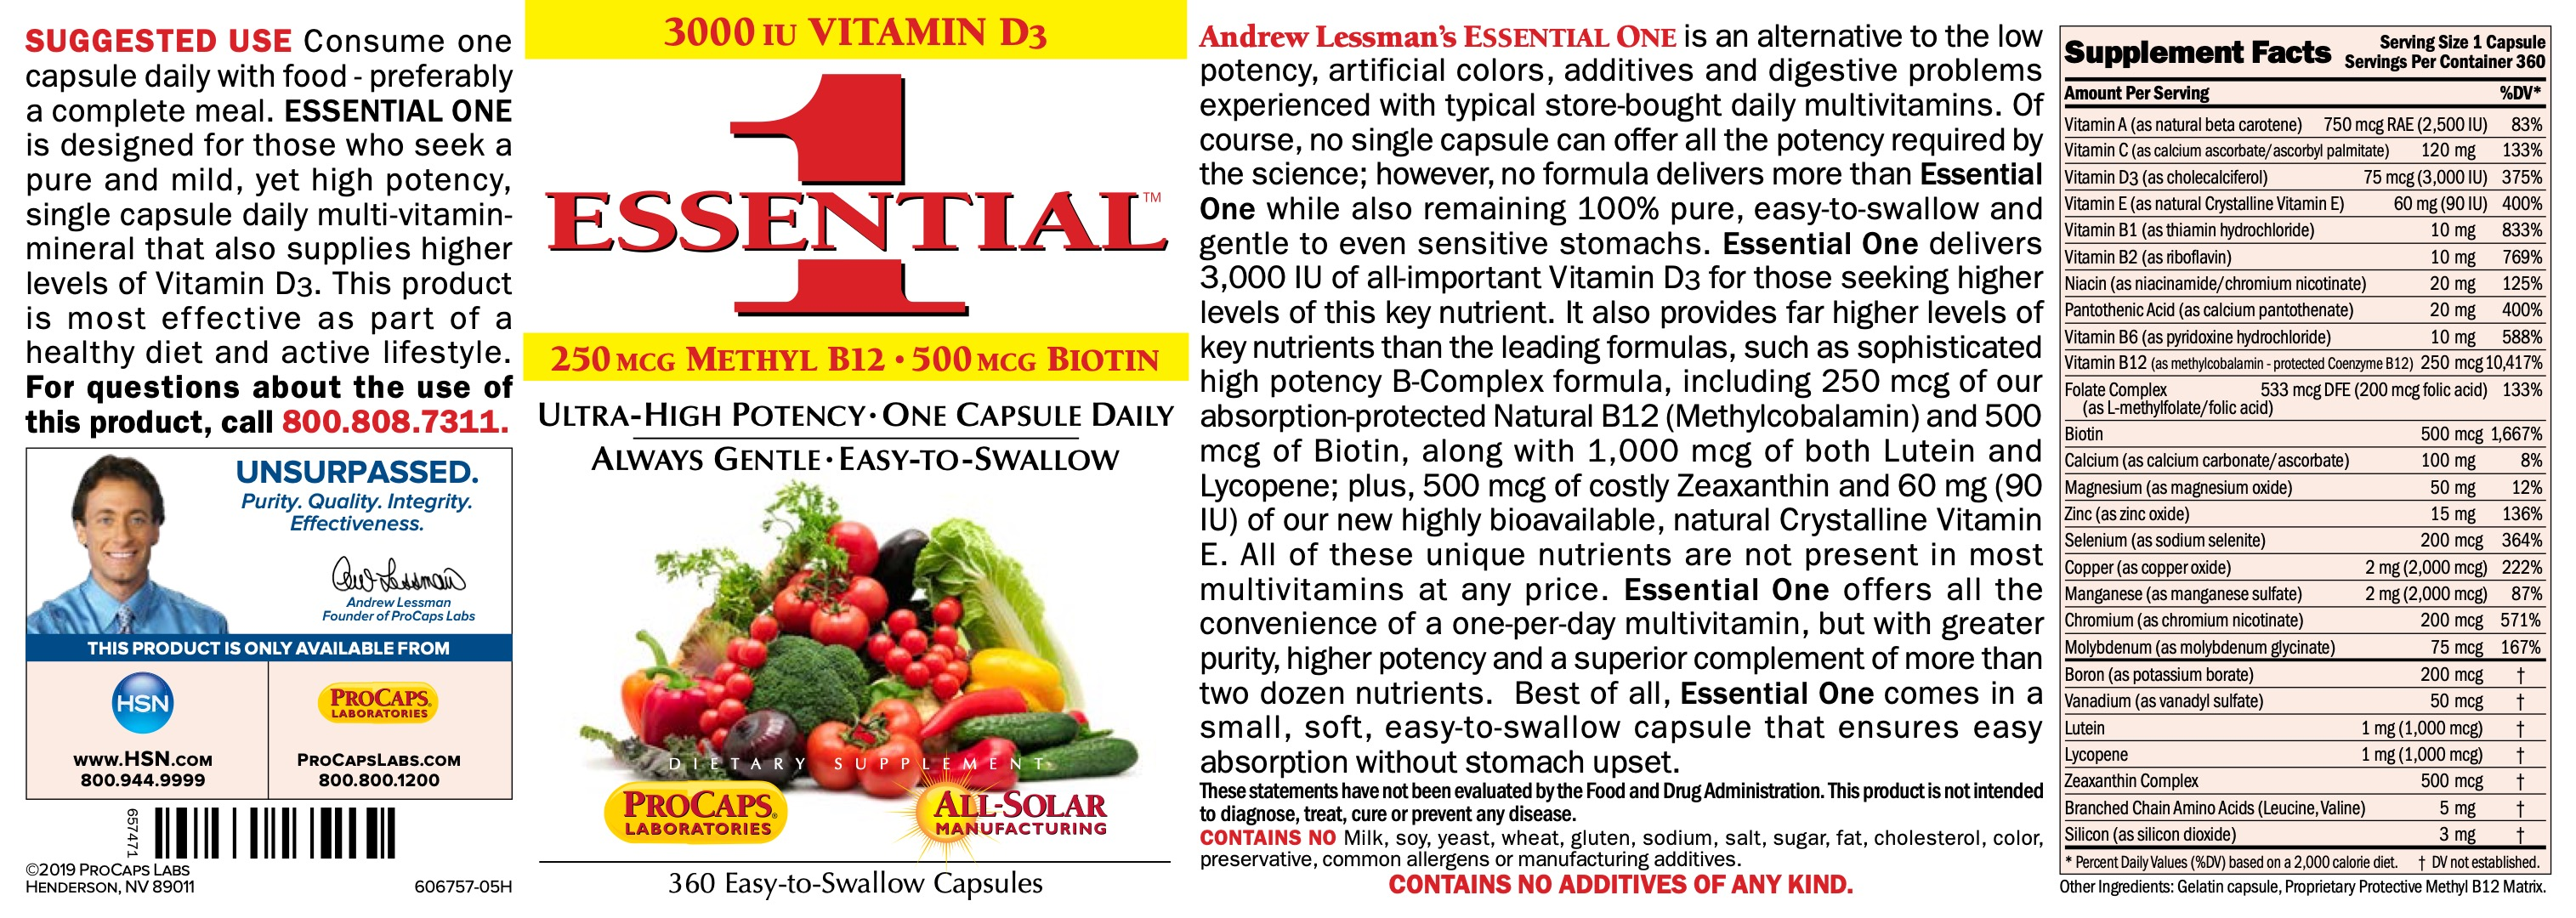 Essential-1-with-3000-IU-Vitamin-D3-Capsules-Multivitamins